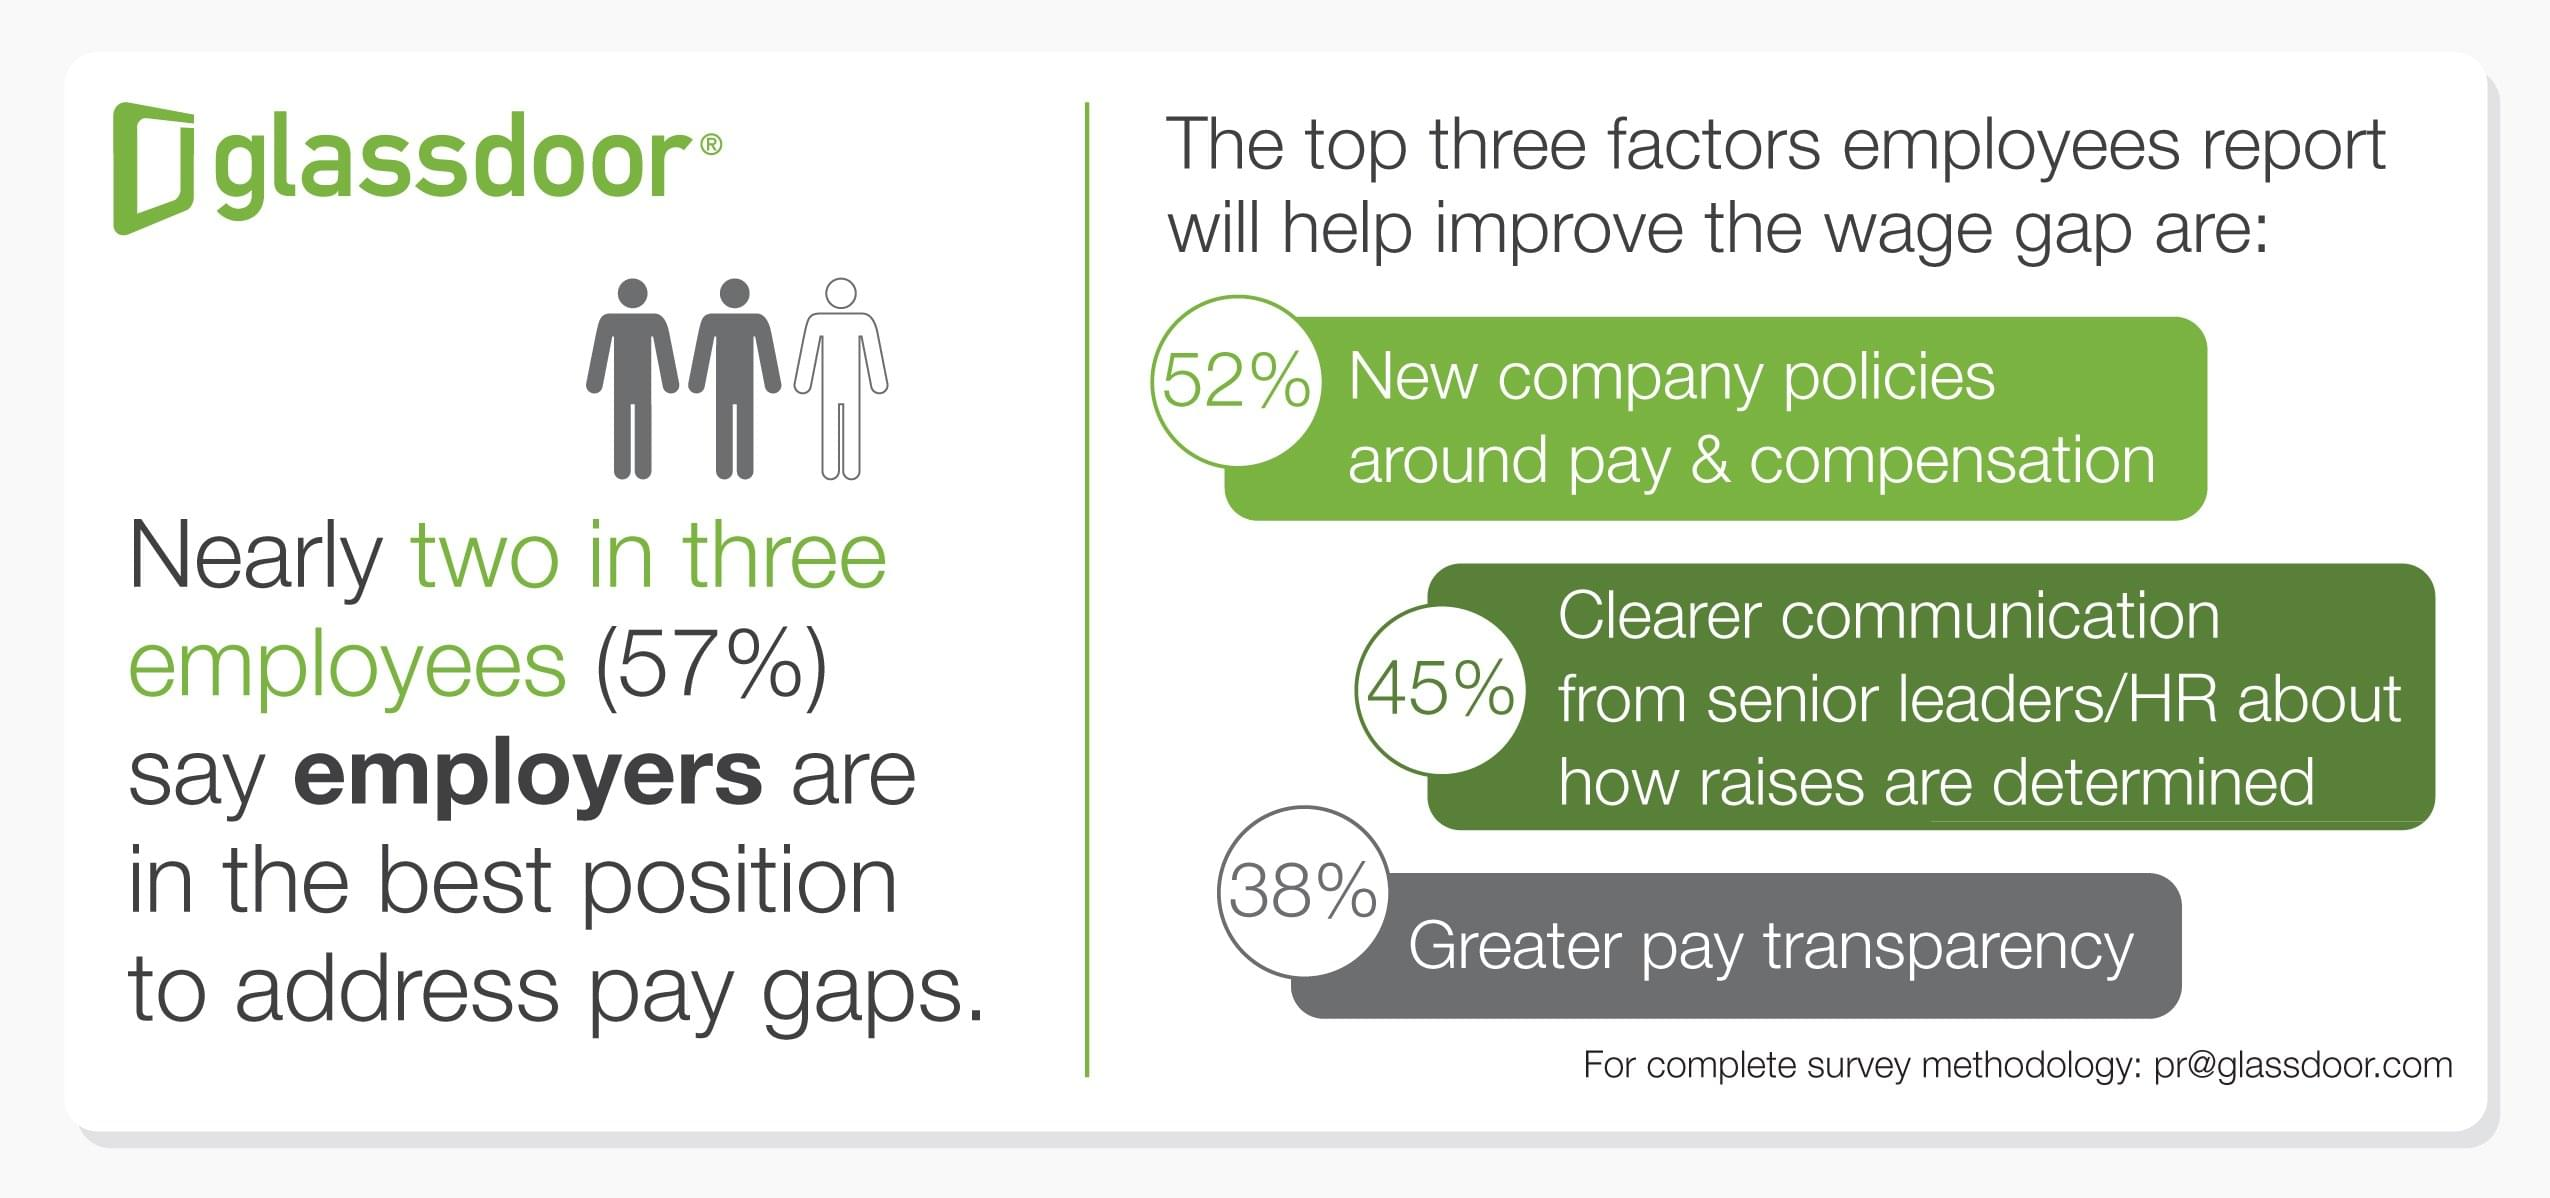 Glassdoor Salary Survey | Recruitment News